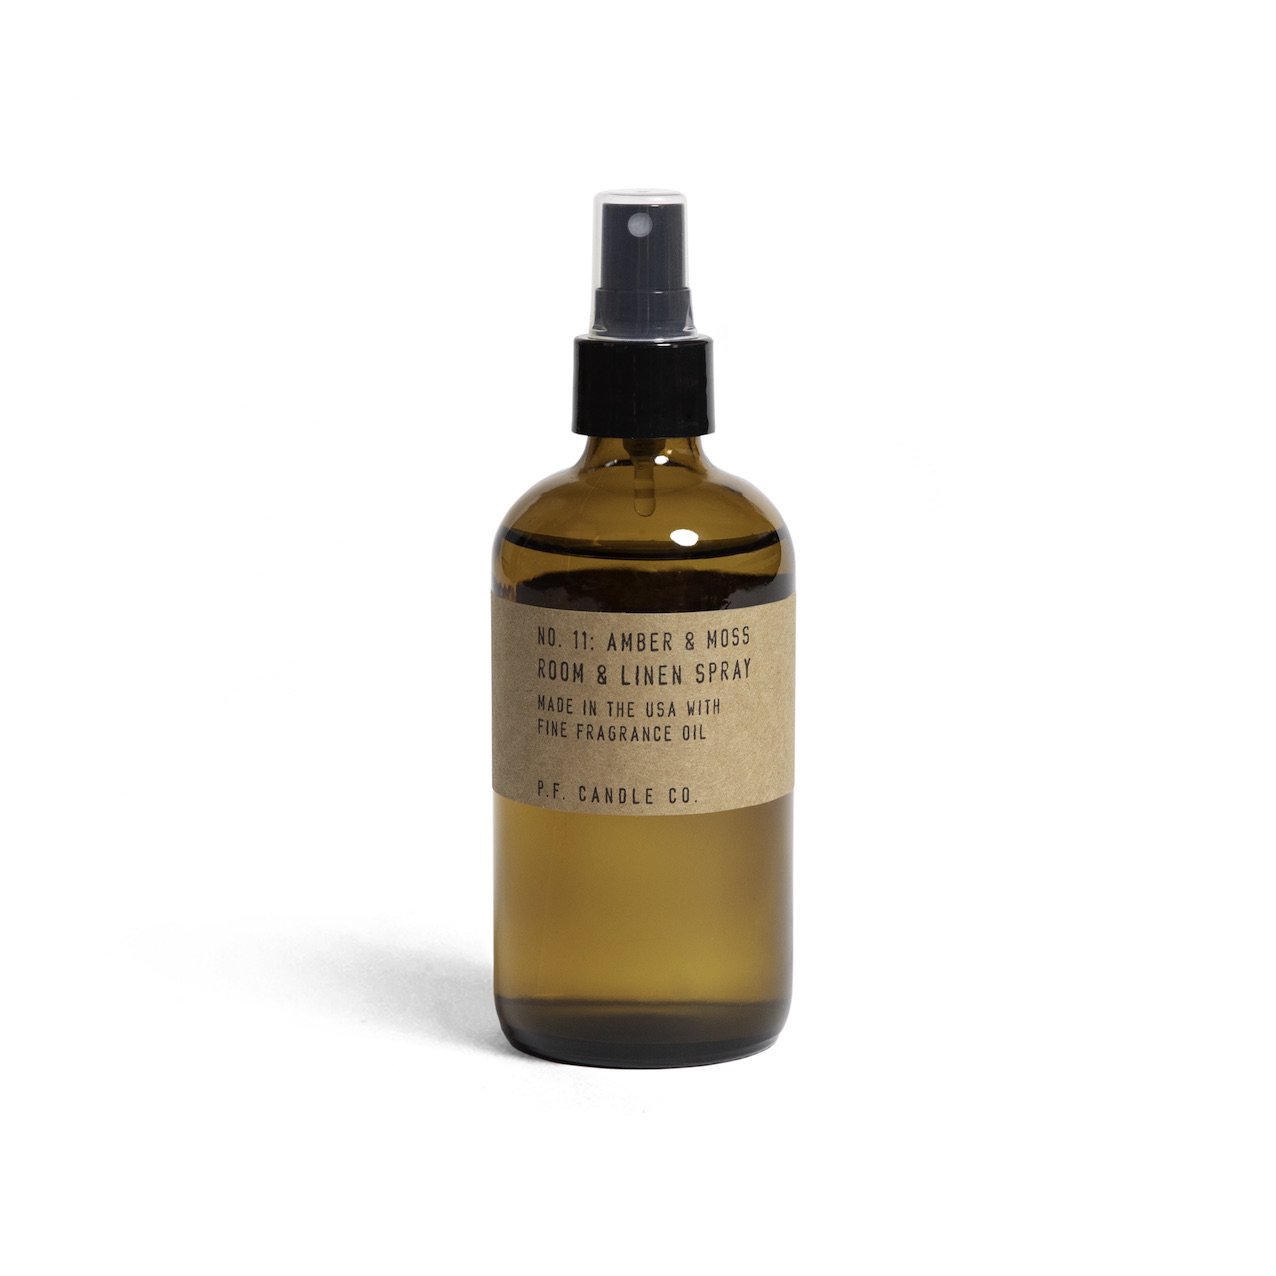 P.F. CANDLE CO.   #Room&Linen Spray / 11 AMBER&MOSS